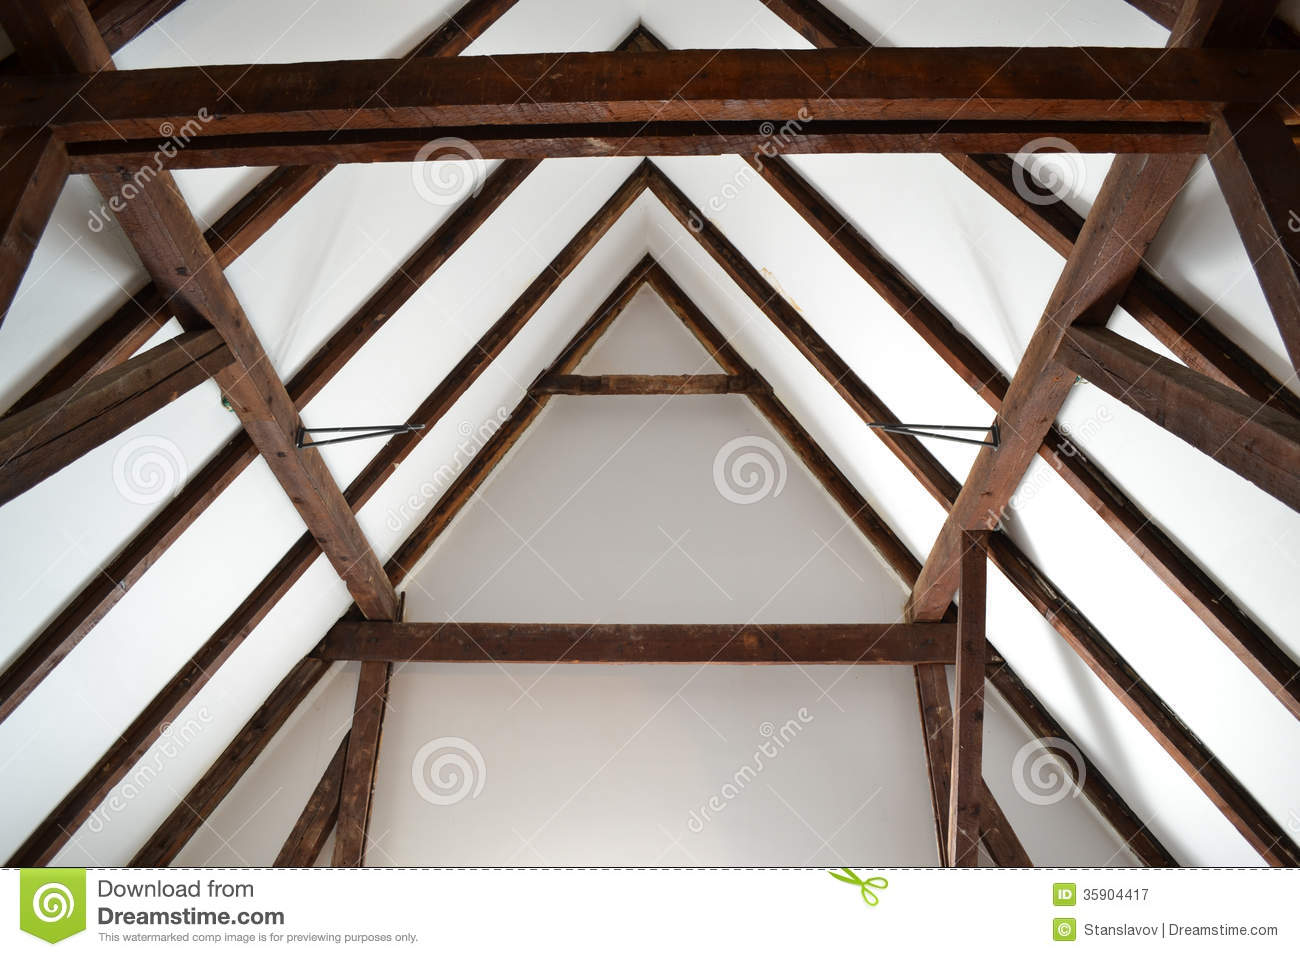 Old wood roof construction stock image. Image of materials ...